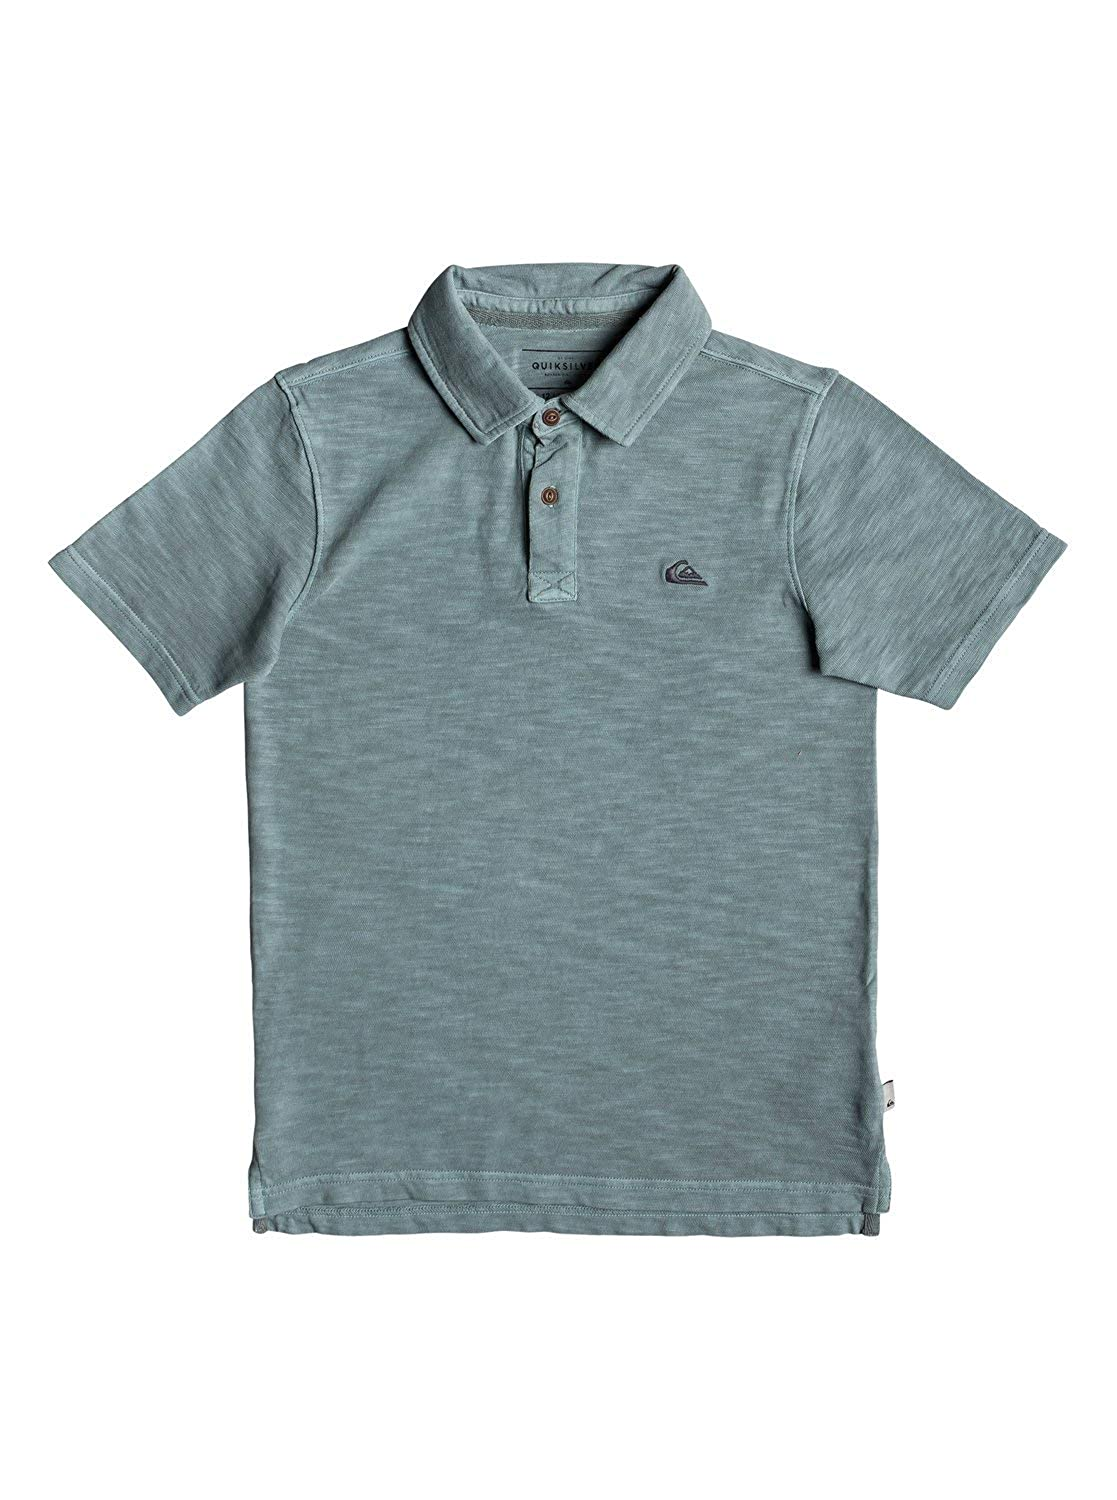 Quiksilver Boys Everyday Sun Cruise Youth Polo: Amazon.es: Ropa y ...